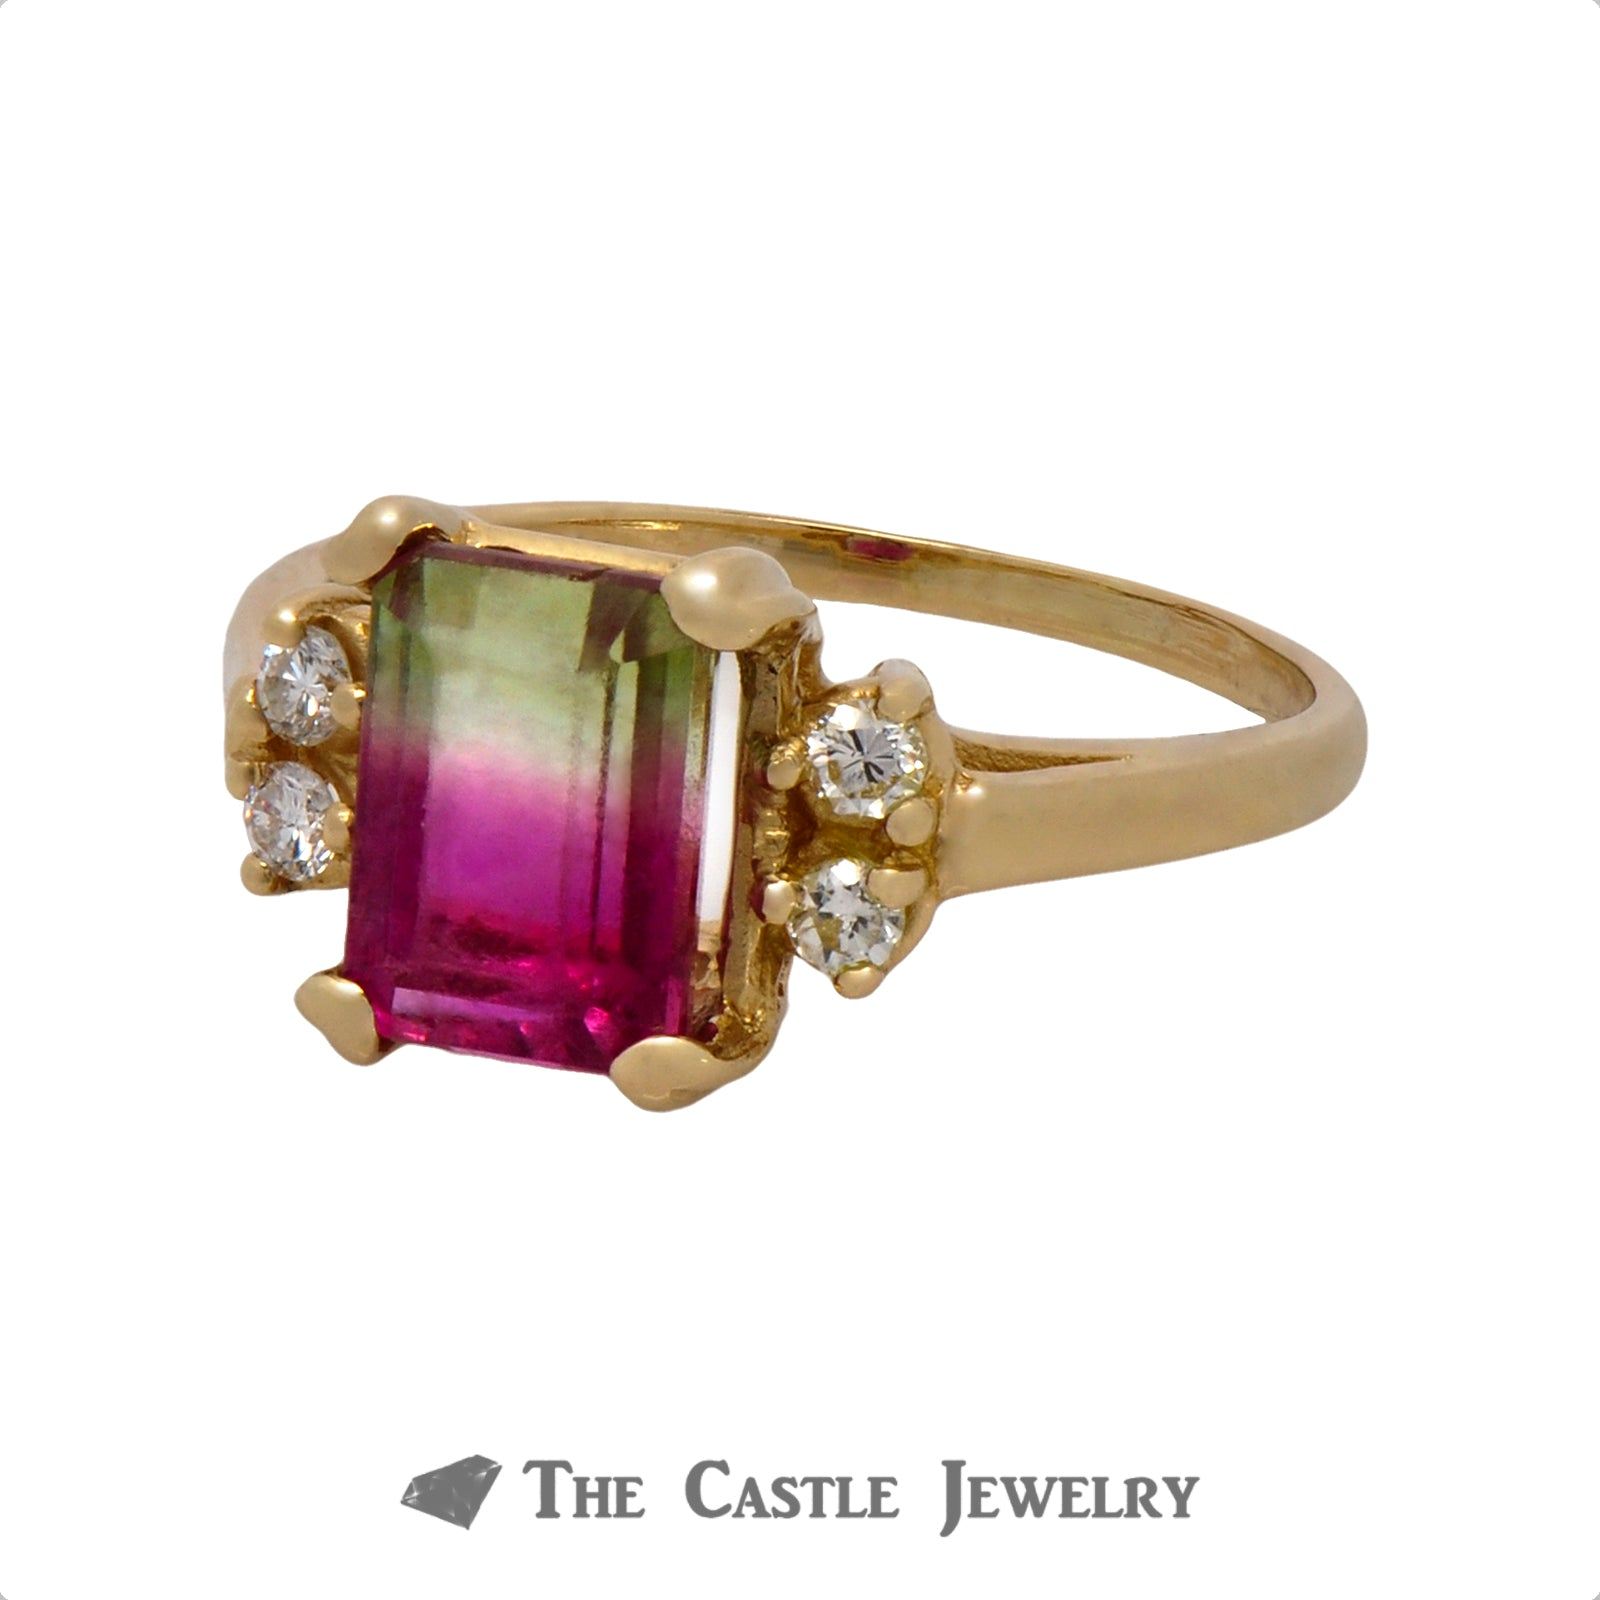 Watermelon Tourmaline Ring with Double Diamond Accents on Each Side Crafted in 14k Yellow Gold-2